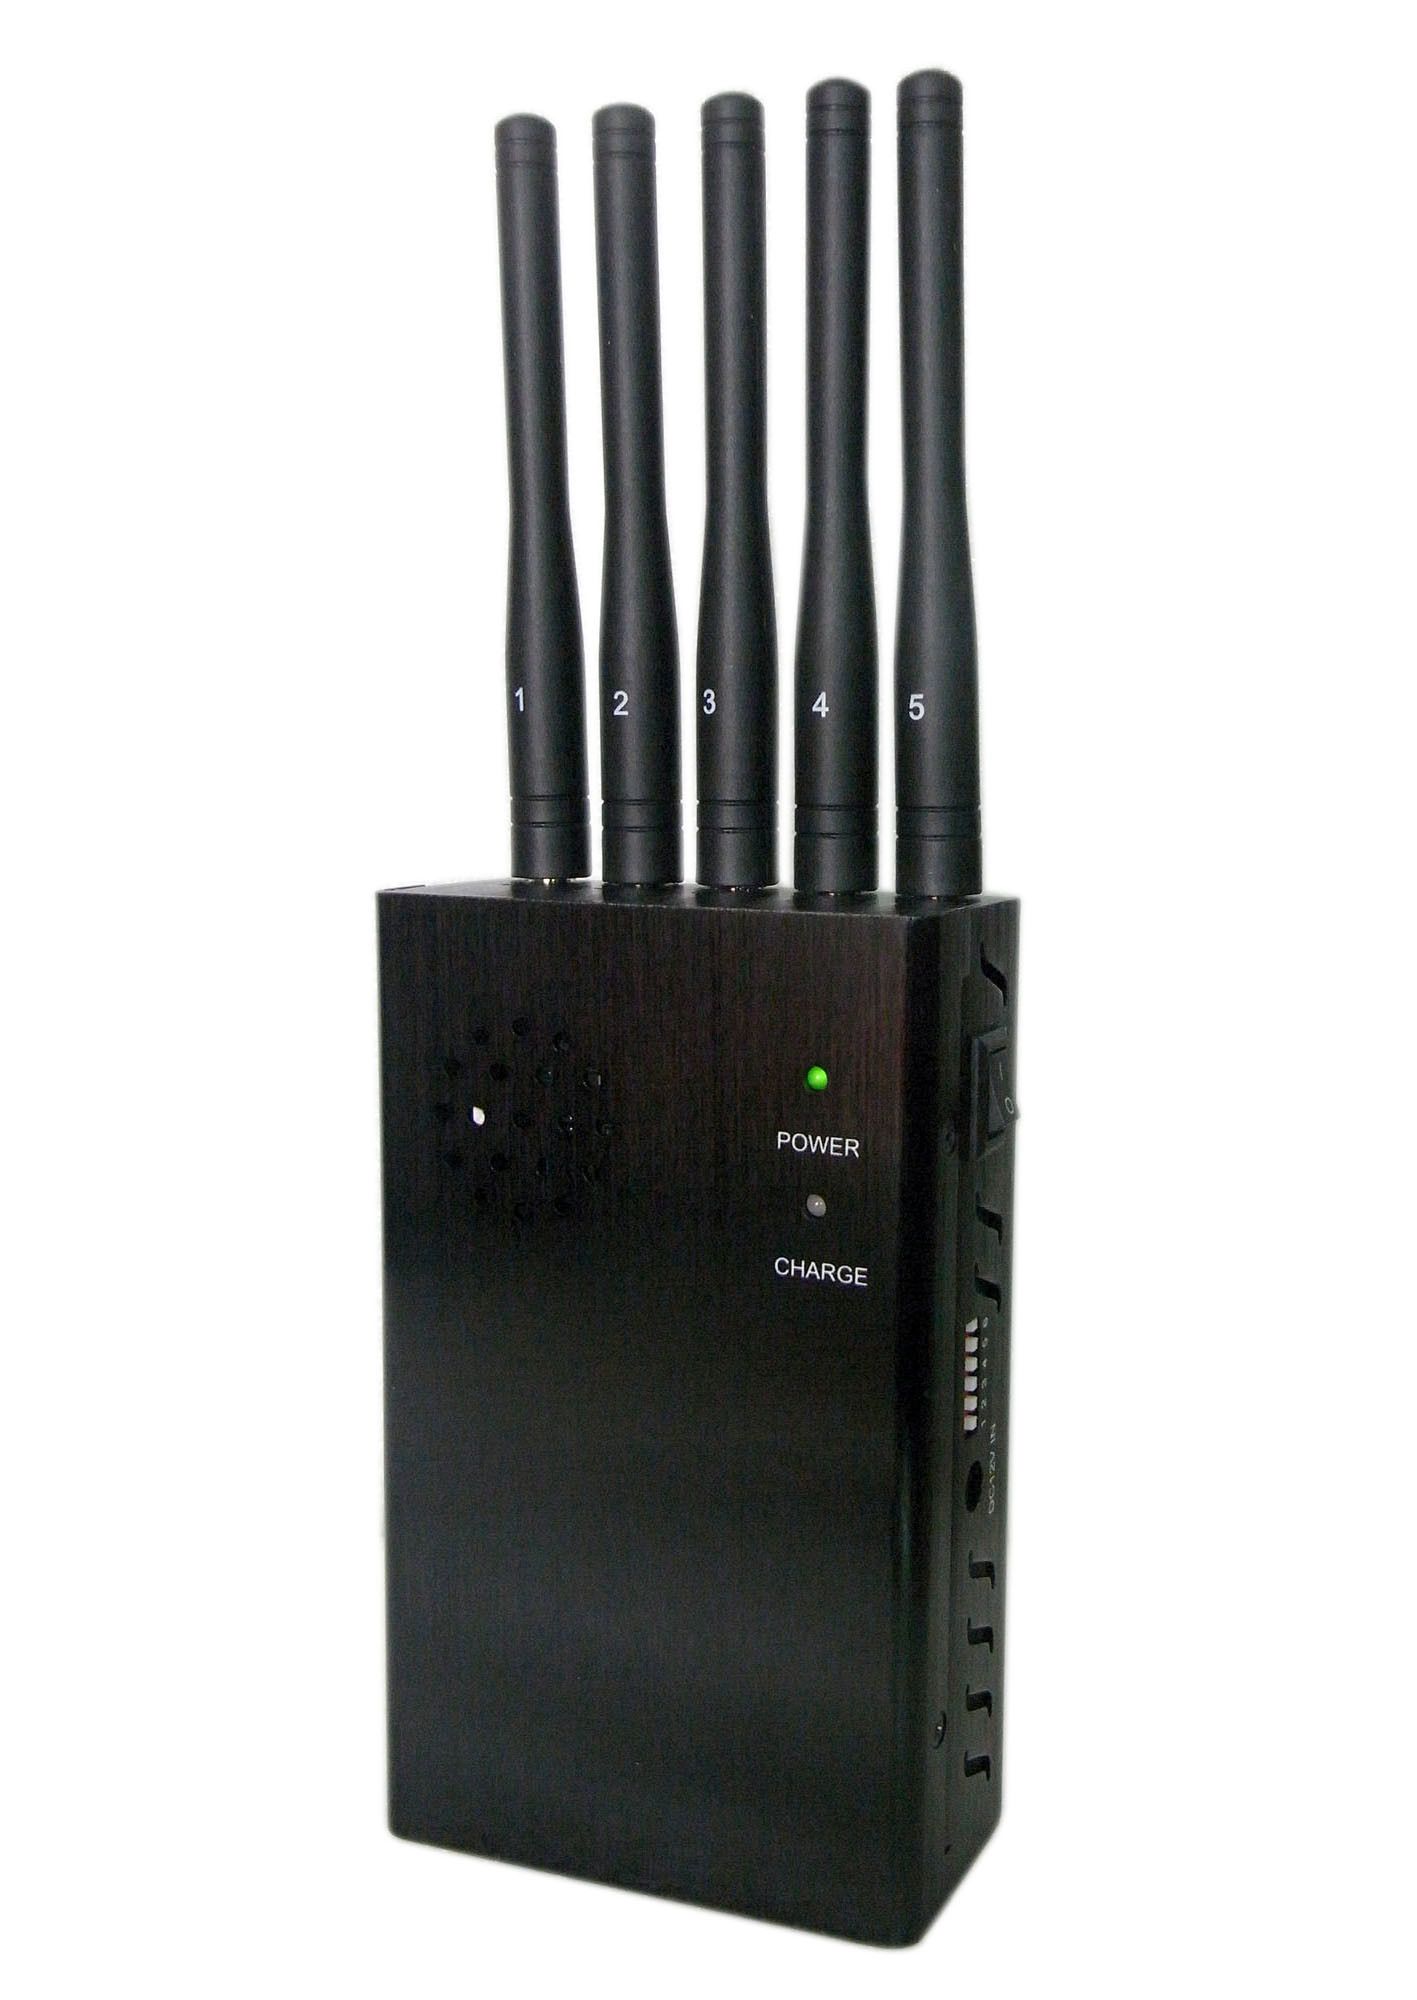 jammer signal blocker device